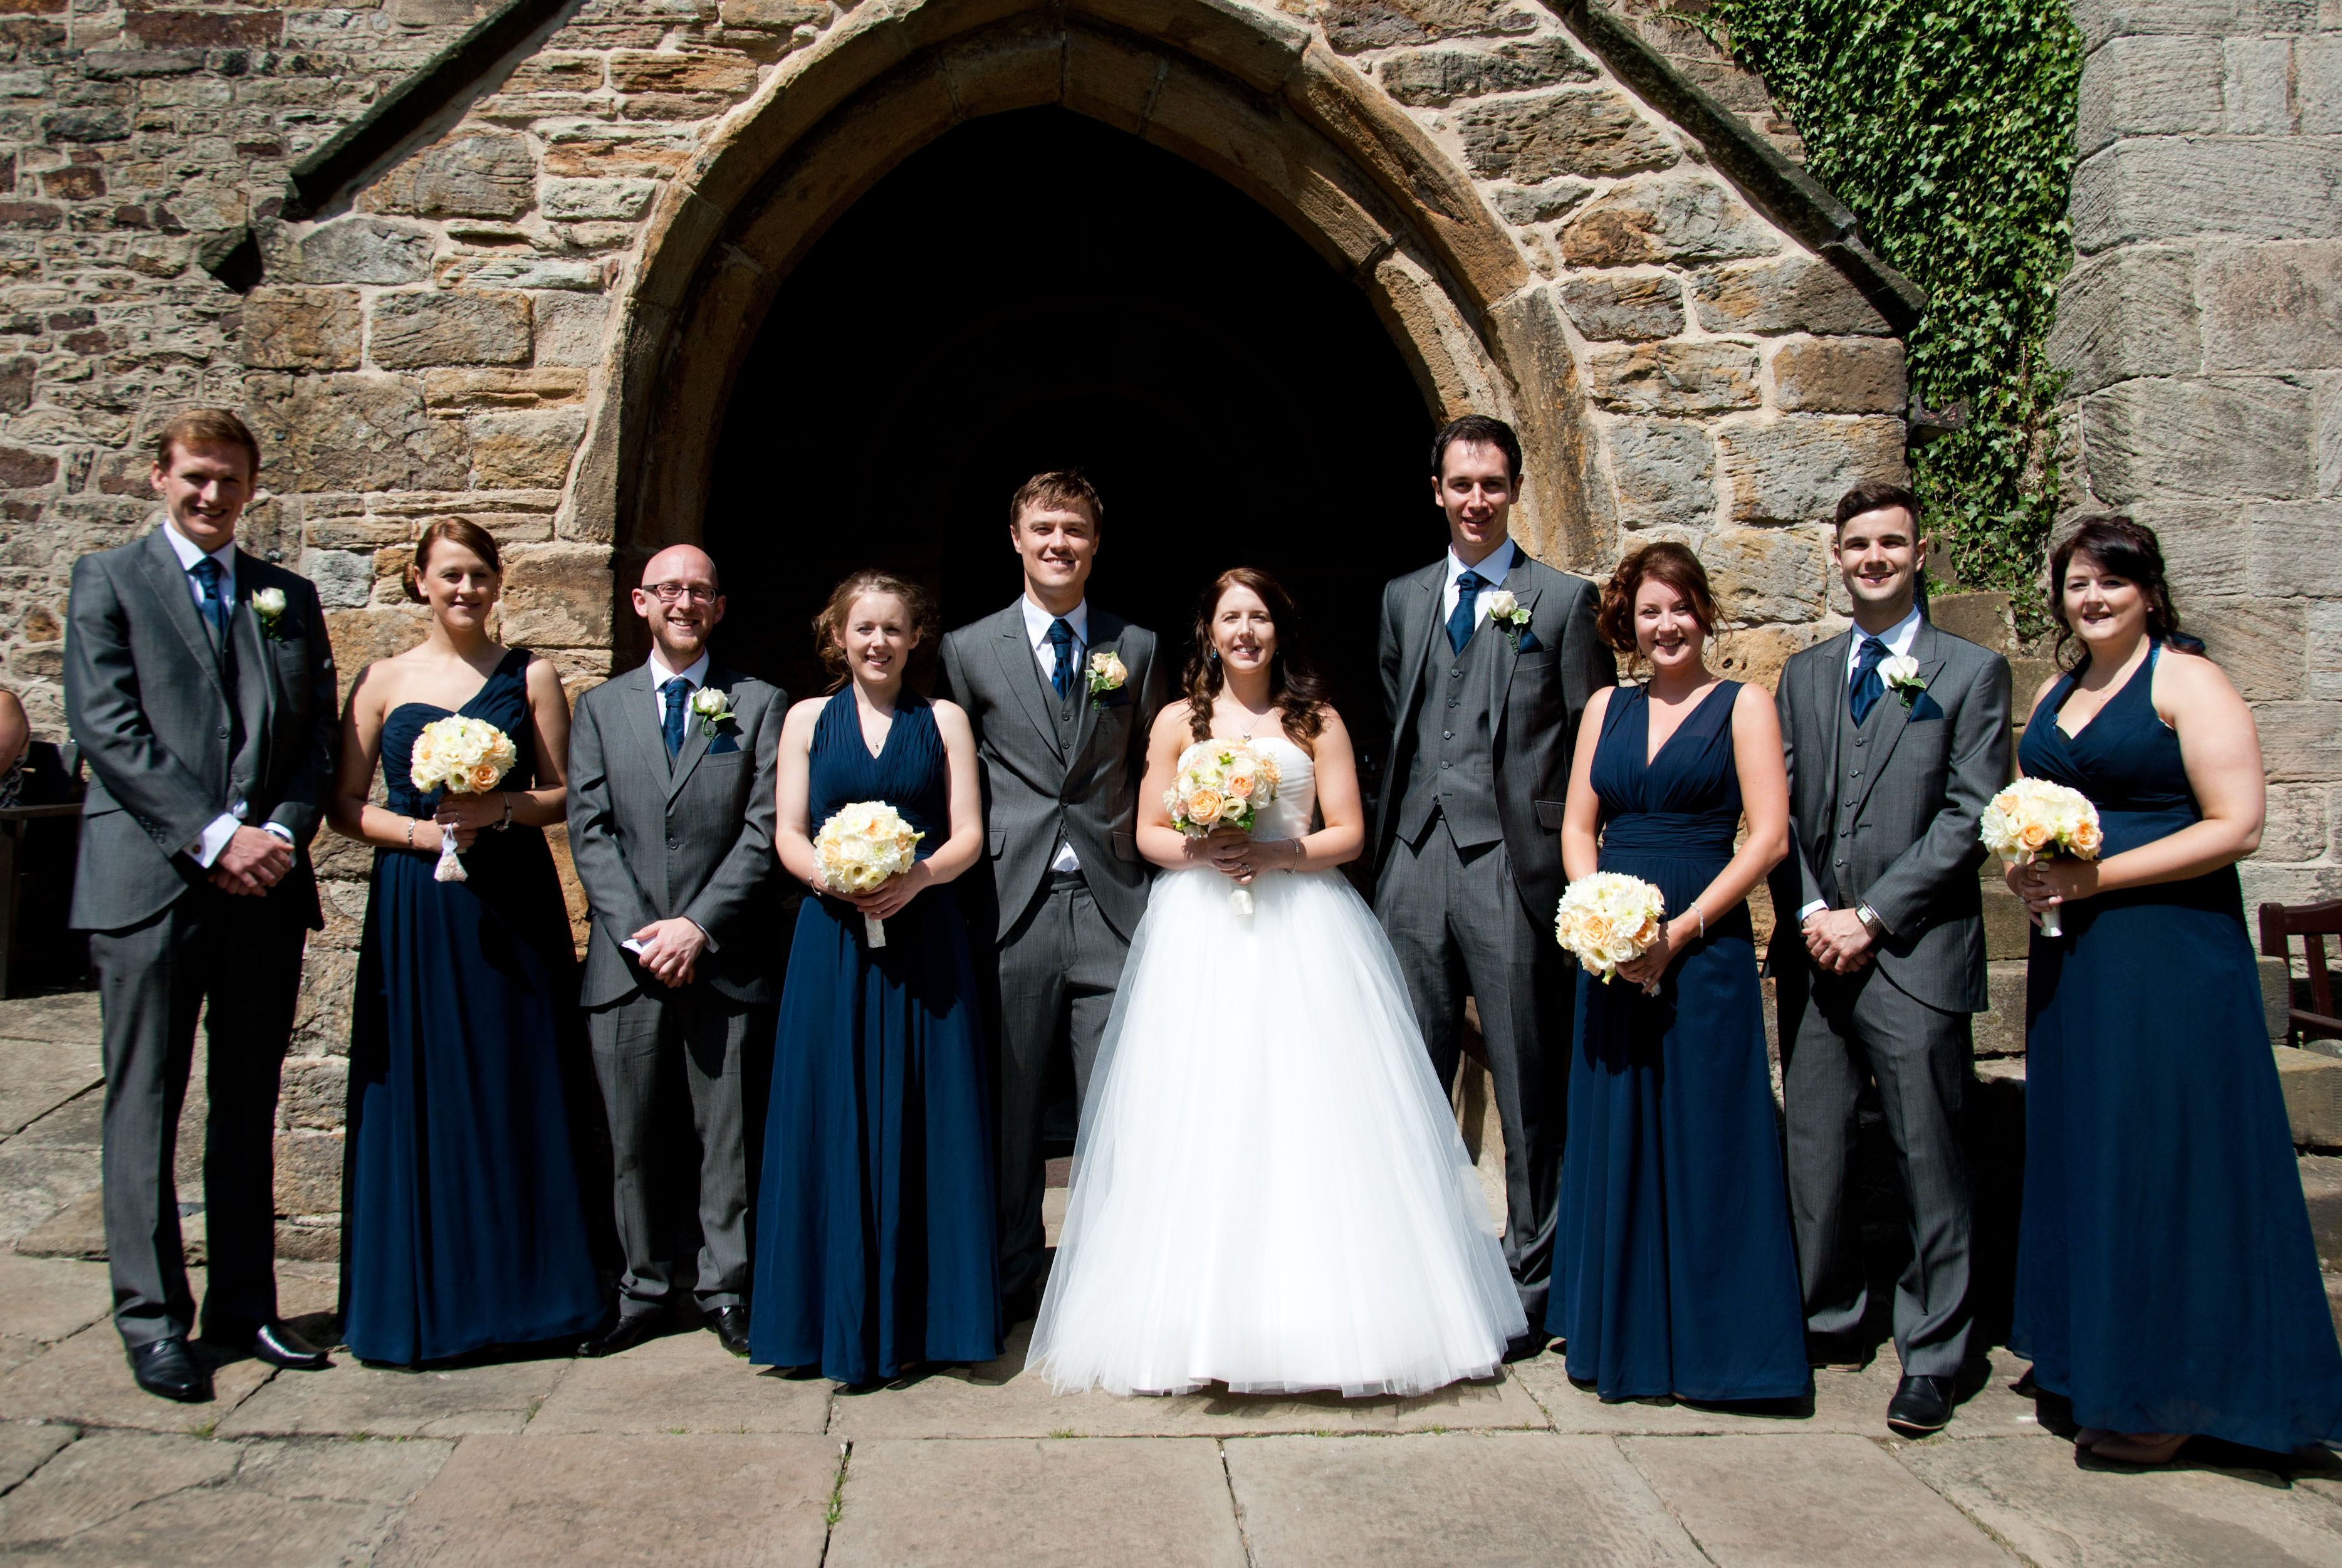 Wedding navy bridesmaids dresses grey suits dark grey ushers wedding navy bridesmaids dresses grey suits dark grey ushers church wedding dress ombrellifo Image collections